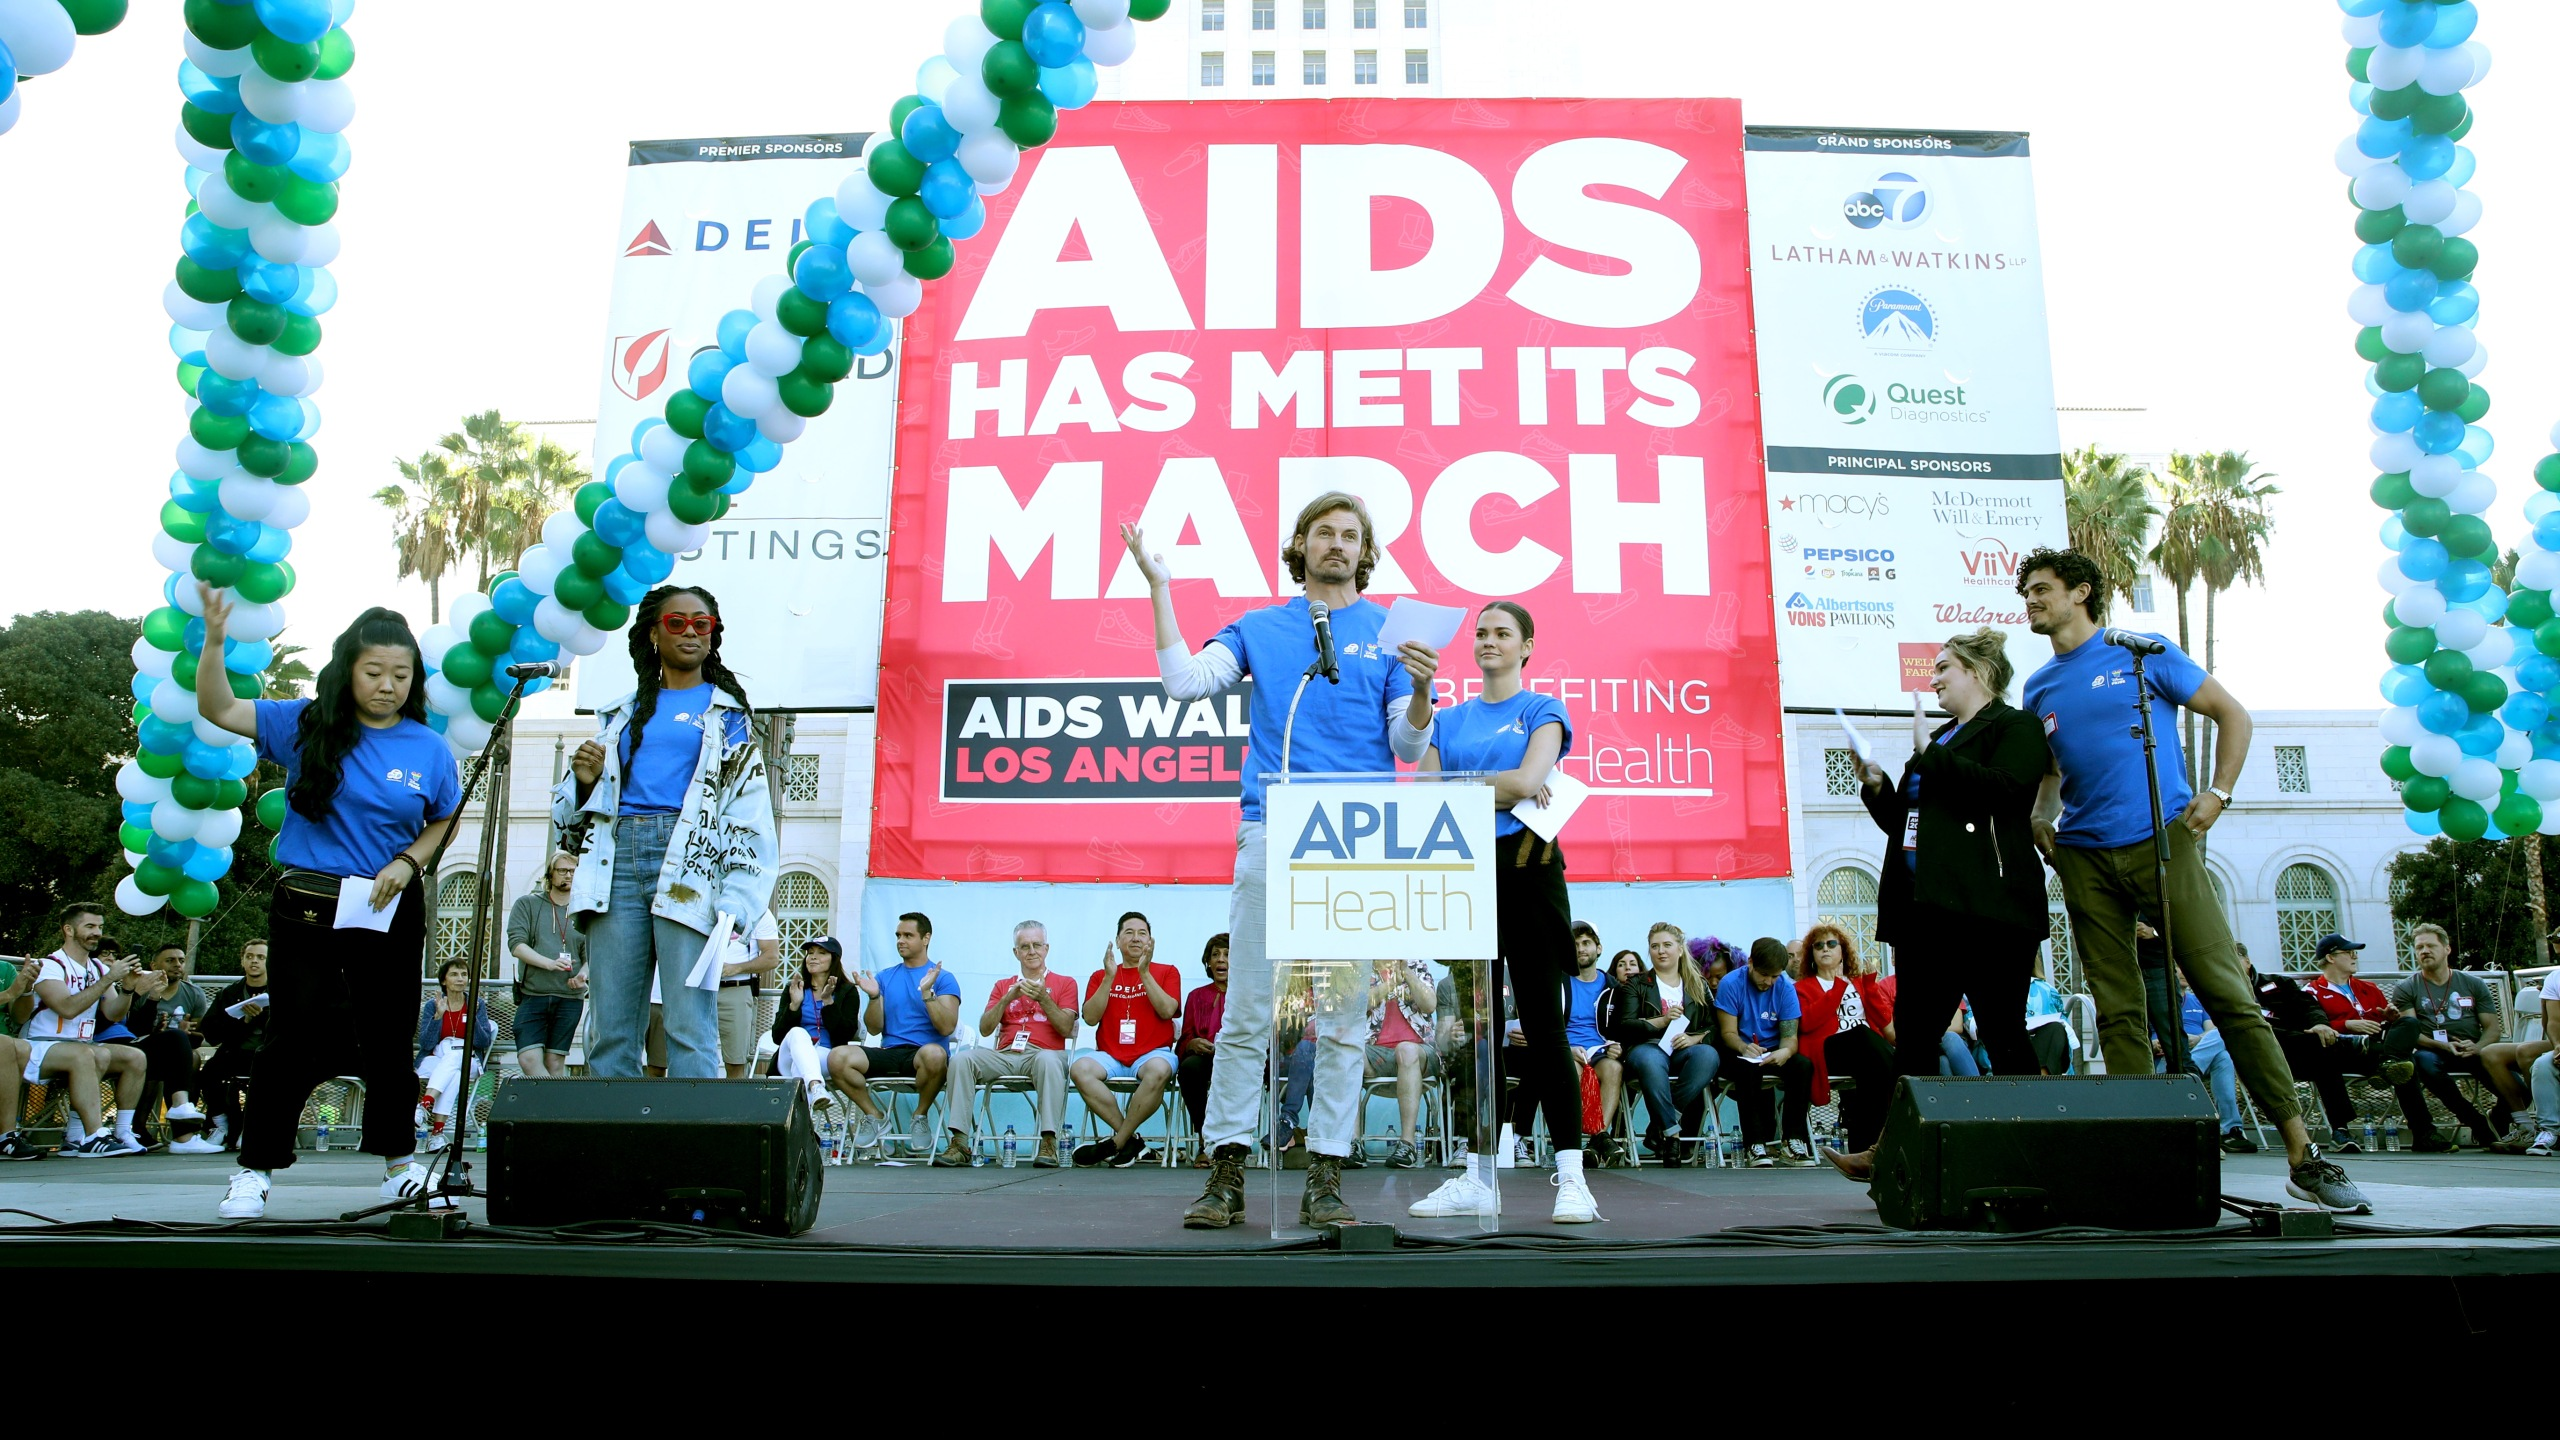 Sherry Cola, Zuri Adele, Josh Pence, Maia Mitchell, Emma Hunton and Tommy Martinez speak on stage during AIDS Walk Los Angeles on Oct. 20, 2019. (Credit: Randy Shropshire/Getty Images for AIDS Walk Los Angeles)